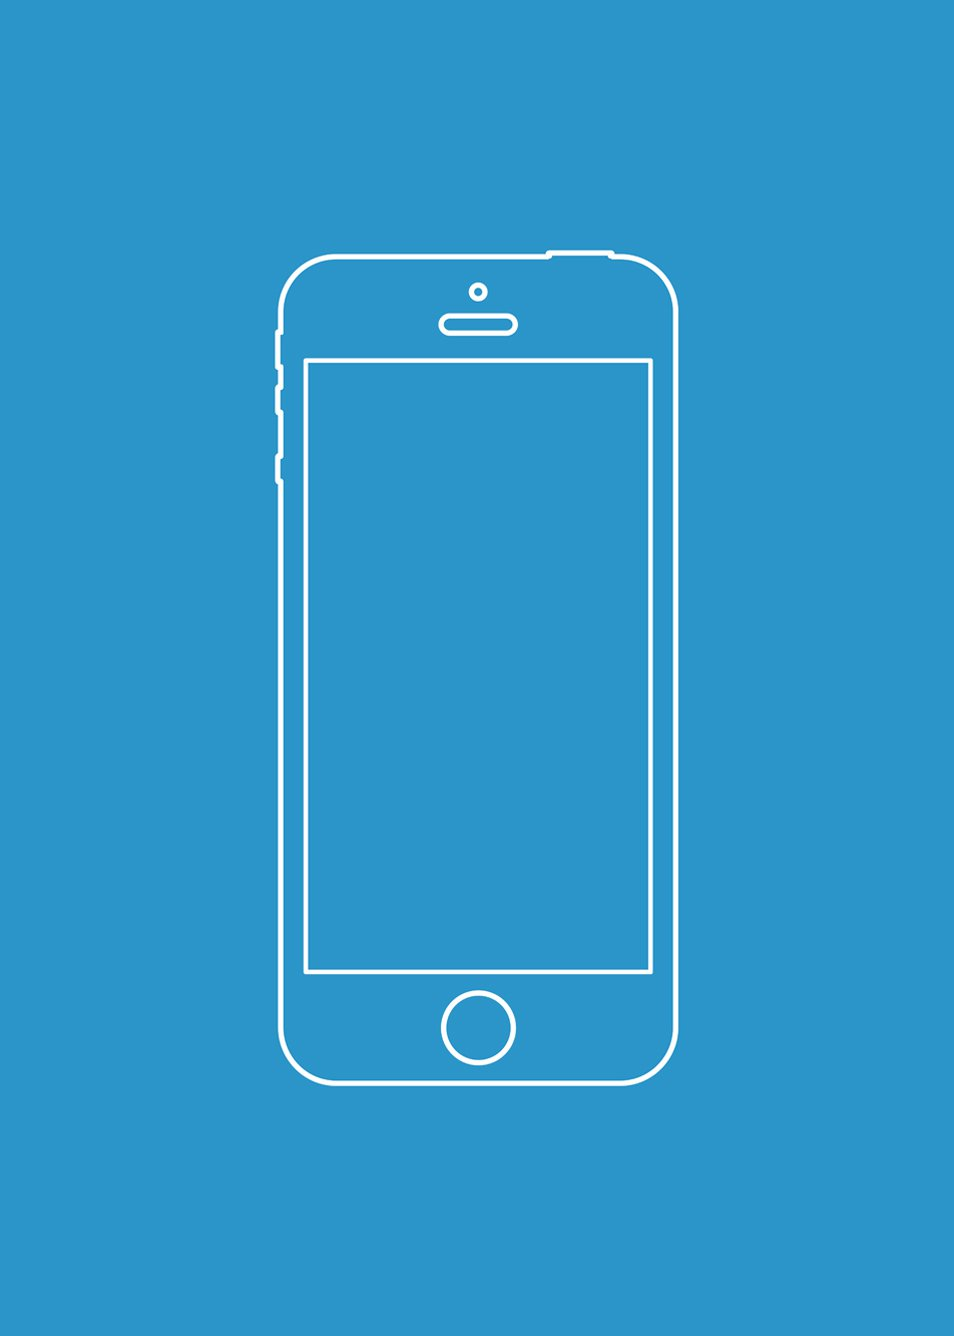 iPhone Wireframe Vector